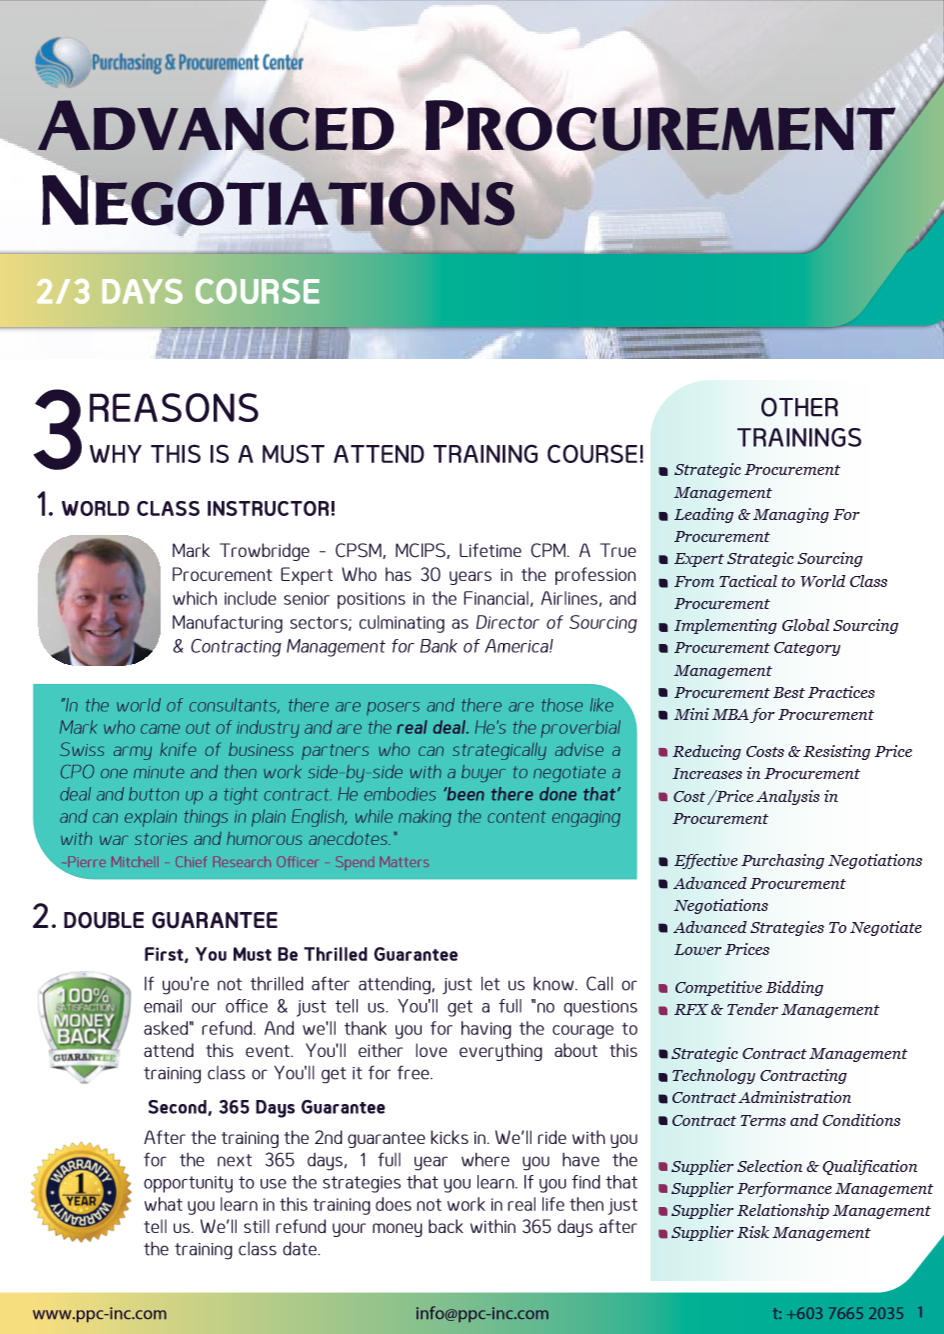 negotiations and profit Business owners have to negotiate on a daily basis when dealing with customers, suppliers, employees, investors, creditors, and government agencies a new study shows that having a clear and defined approach to negotiation makes a massive bottom line difference negotiation expert professor barney jordaan explains how.